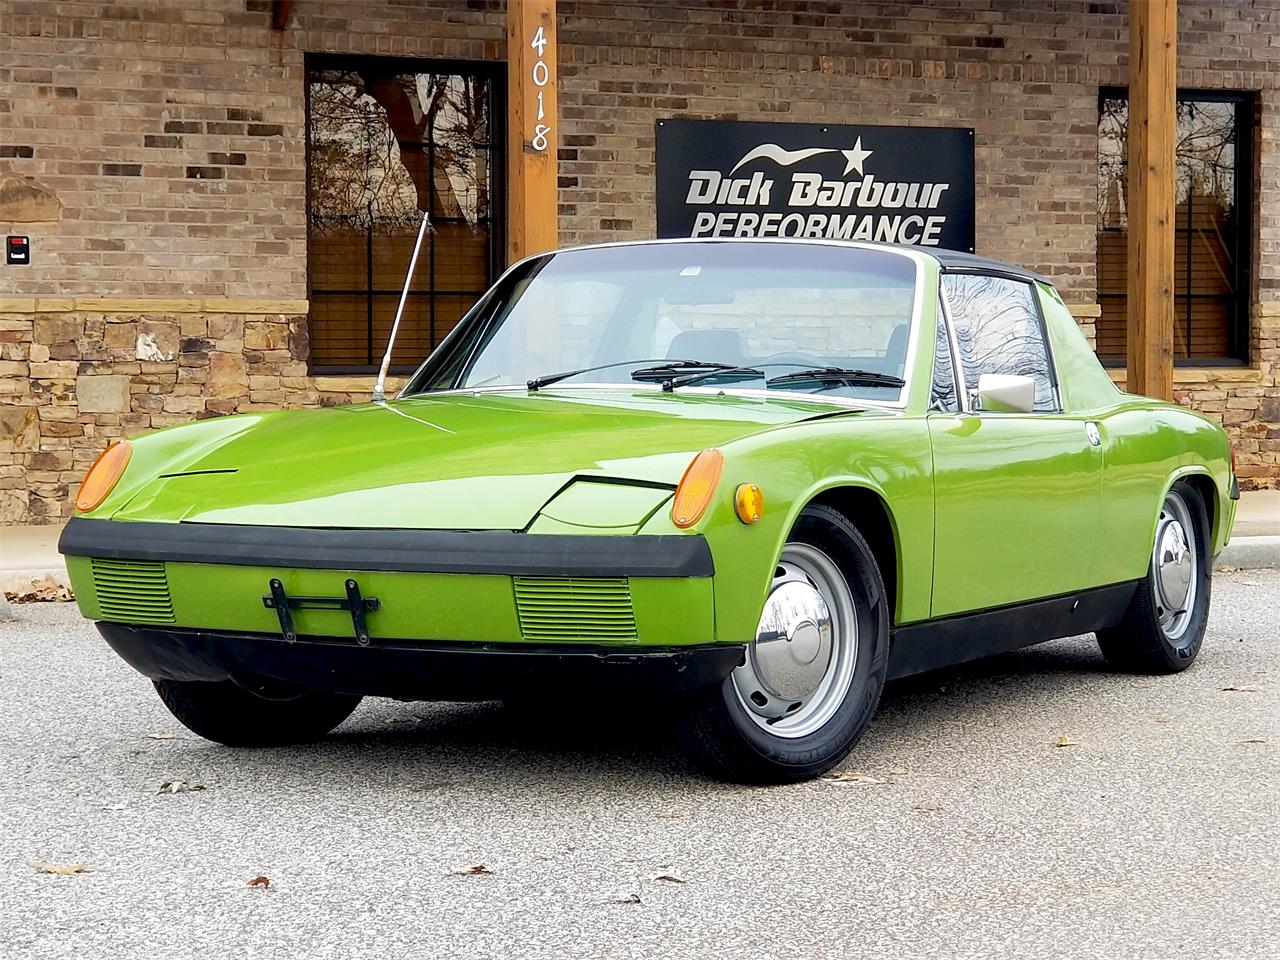 Large Picture of 1971 Porsche 914 - $17,900.00 Offered by Dick Barbour Performance - P40G